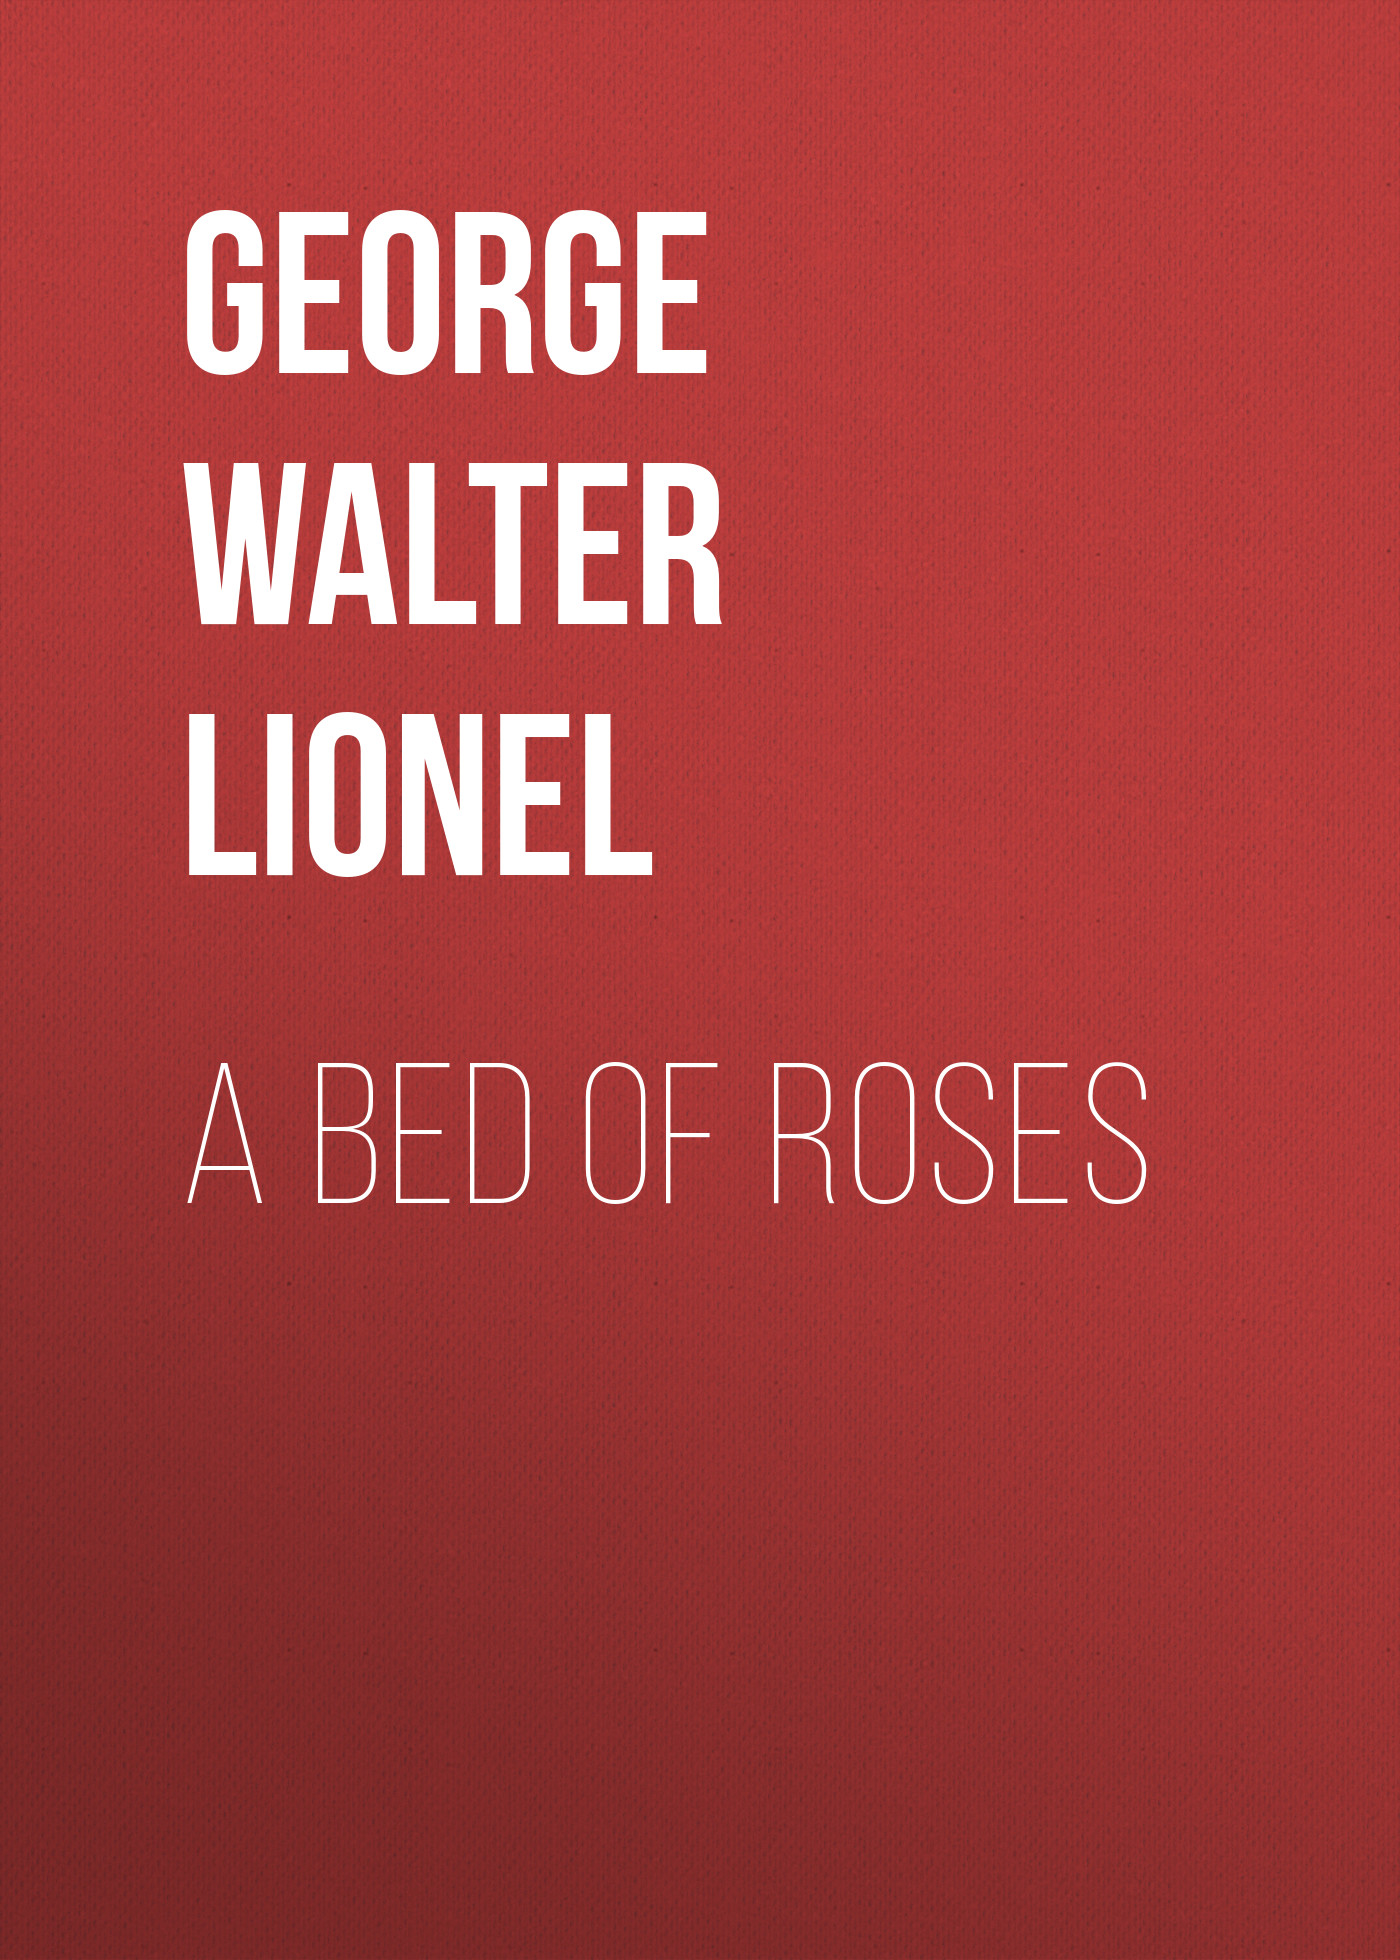 George Walter Lionel A Bed of Roses george walter lionel a bed of roses